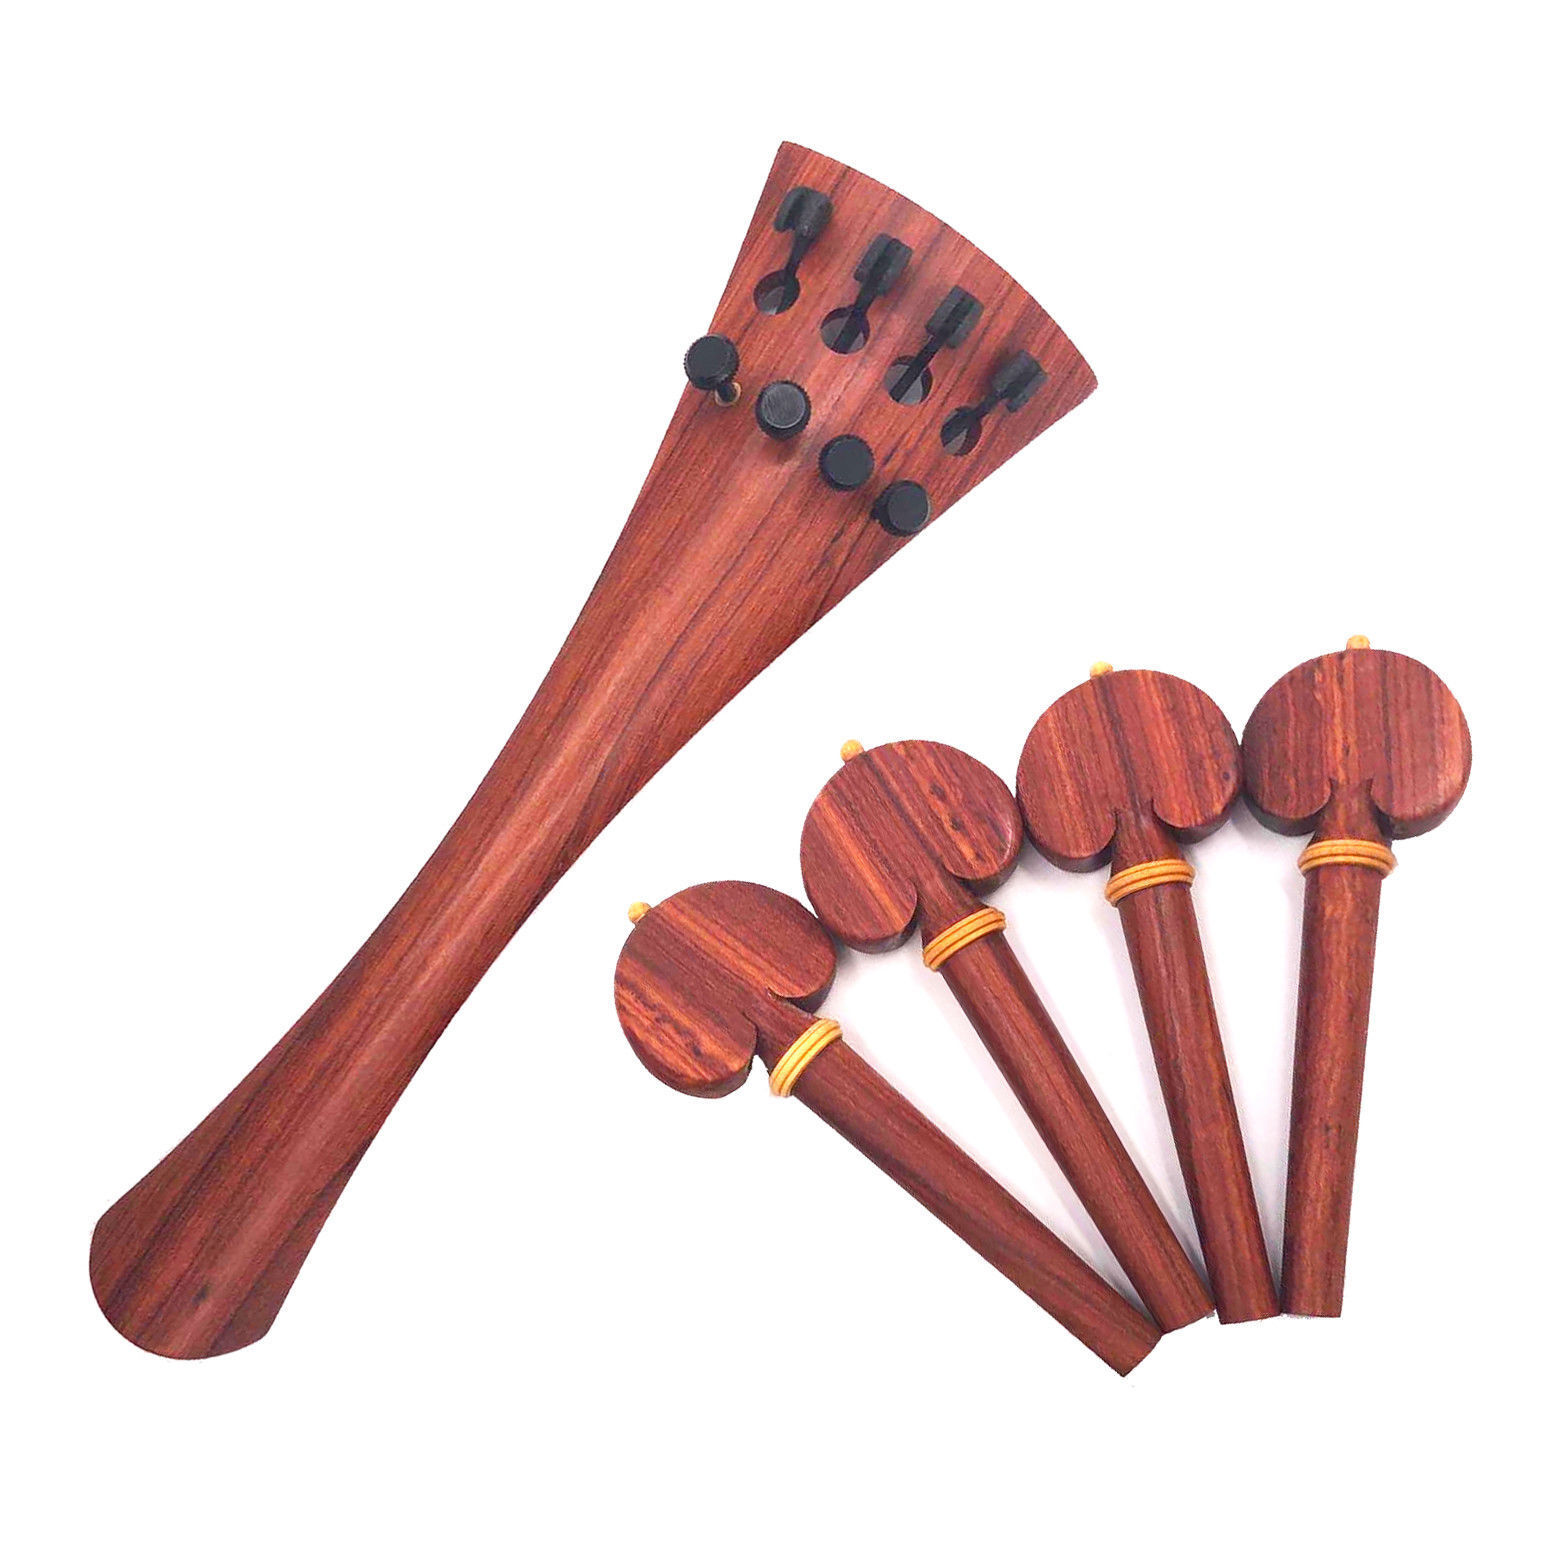 4 4 Size Cello Tailpiece pinkwood pink Wood Screw Fine Tuner Top Quality + Pegs